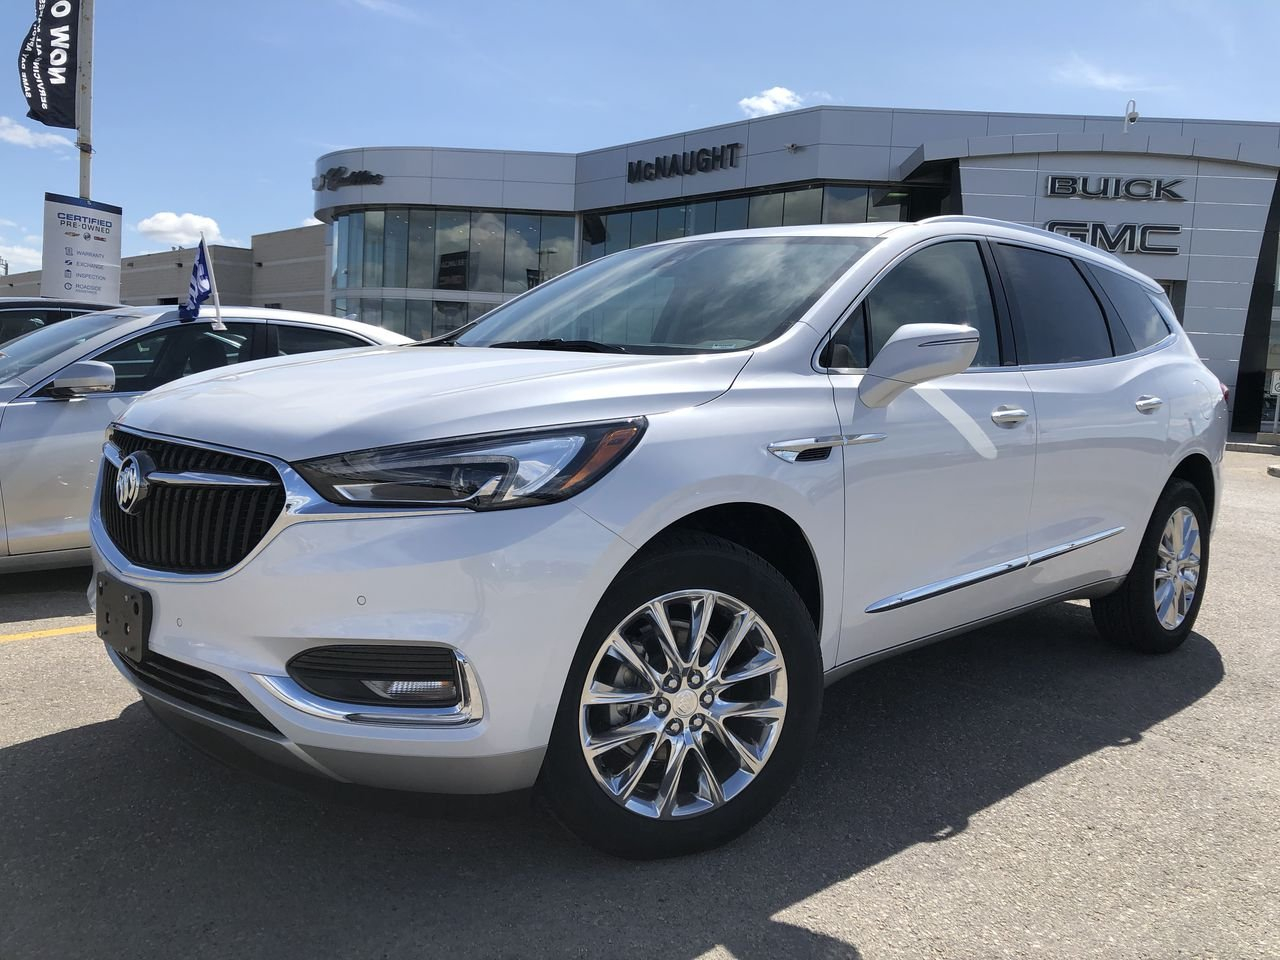 New 2020 Buick Enclave Premium 2022 Buick Enclave Manual, Maintenance Schedule, Mileage